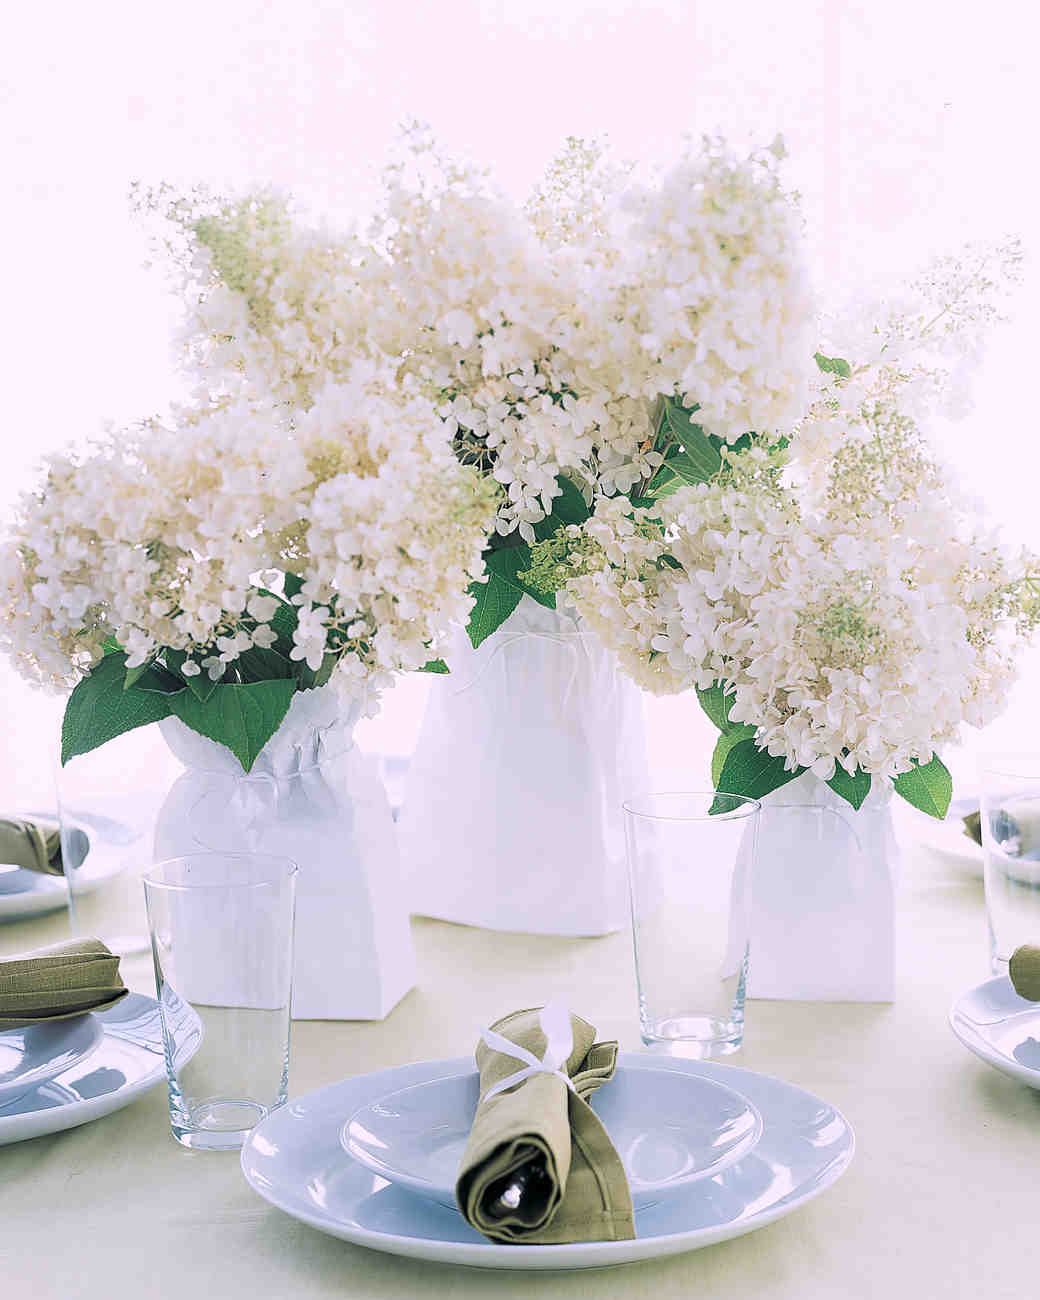 This is my favorite Inexpensive Table Centerpiece for Spring and Summer events. Who knew that cheap centerpiece ideas using Wheat Grass could be this simple, yet pack such a punch?